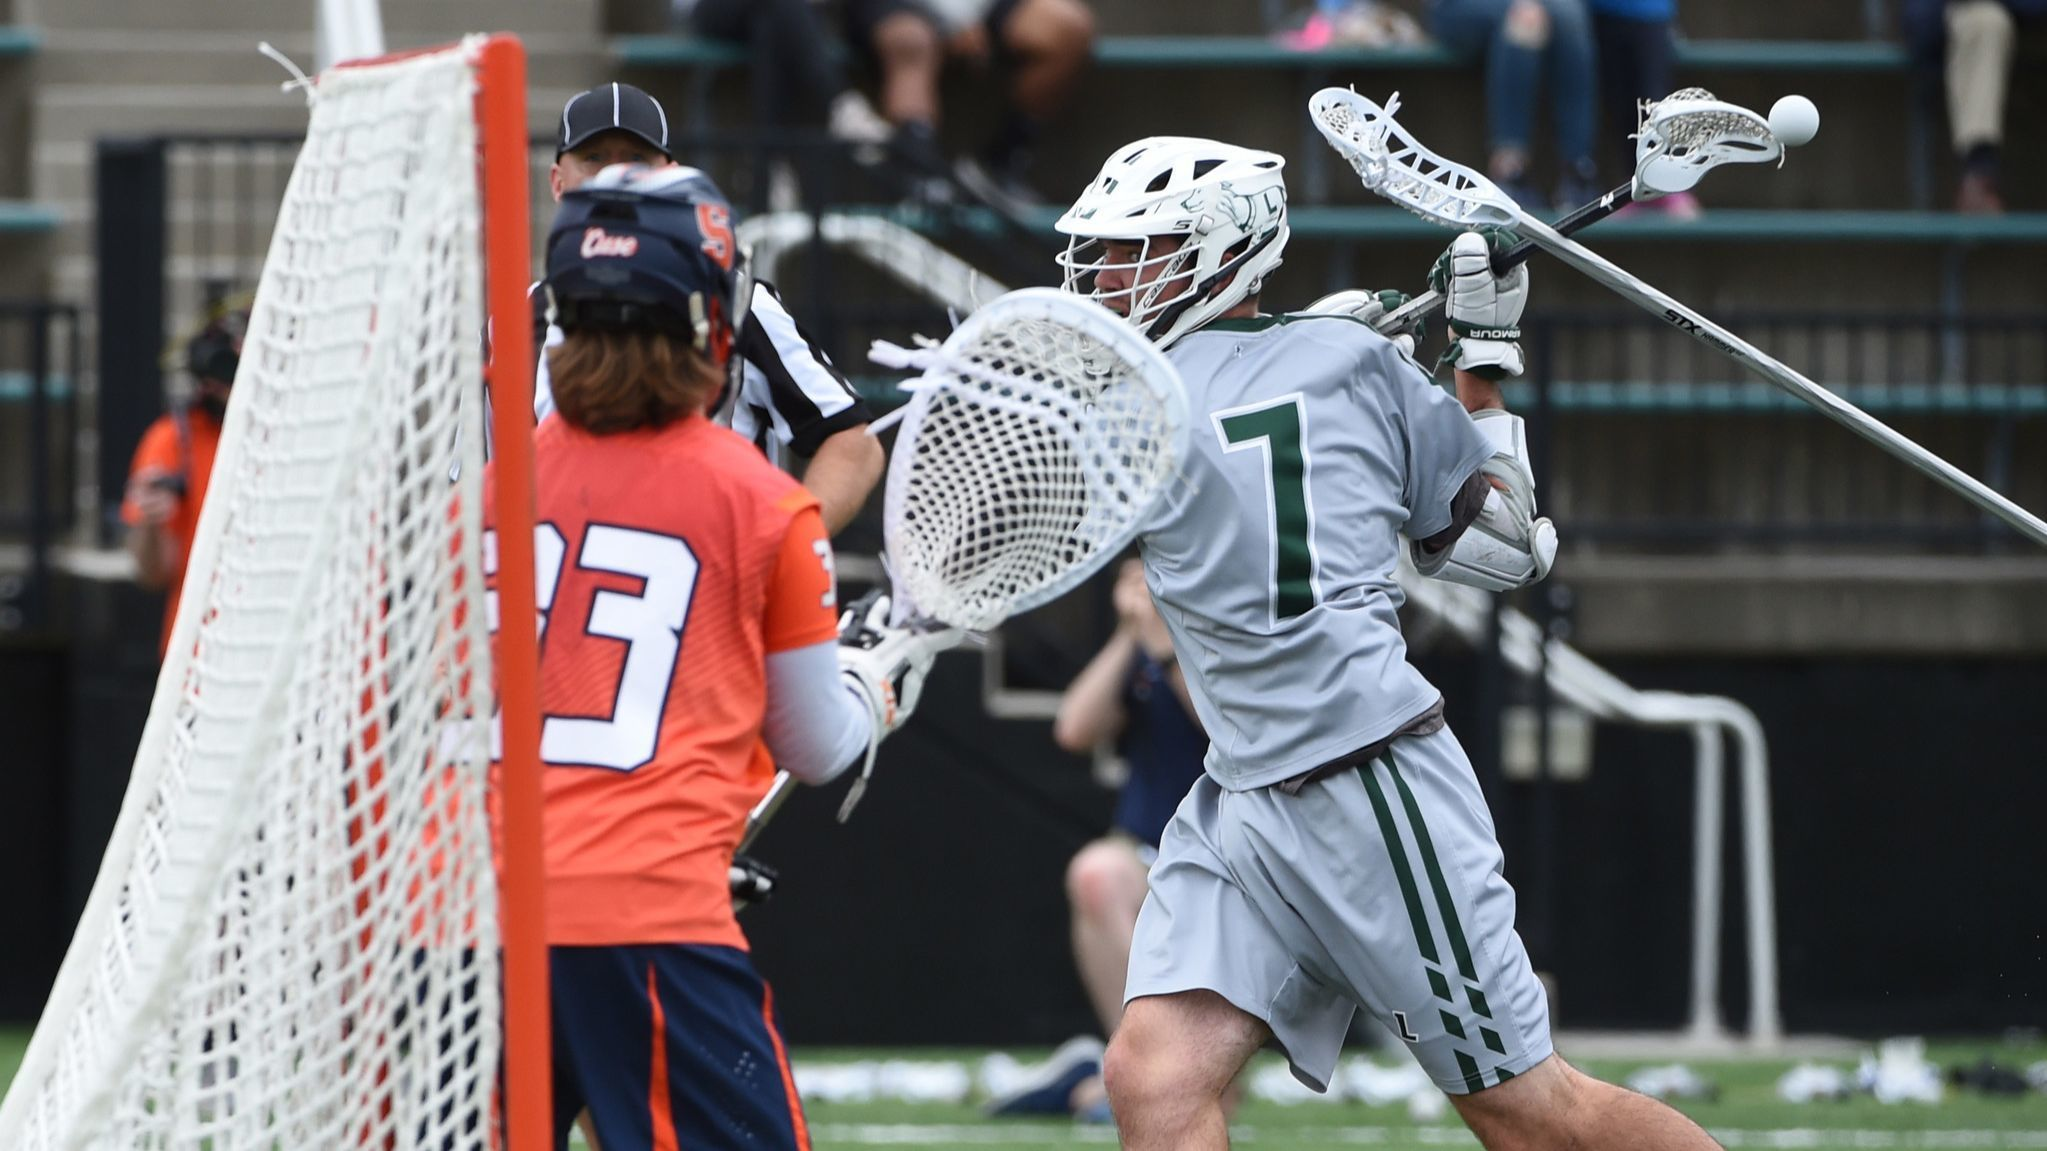 Spencer sets records, powers Loyola past Syracuse in NCAA men's lacrosse tournament